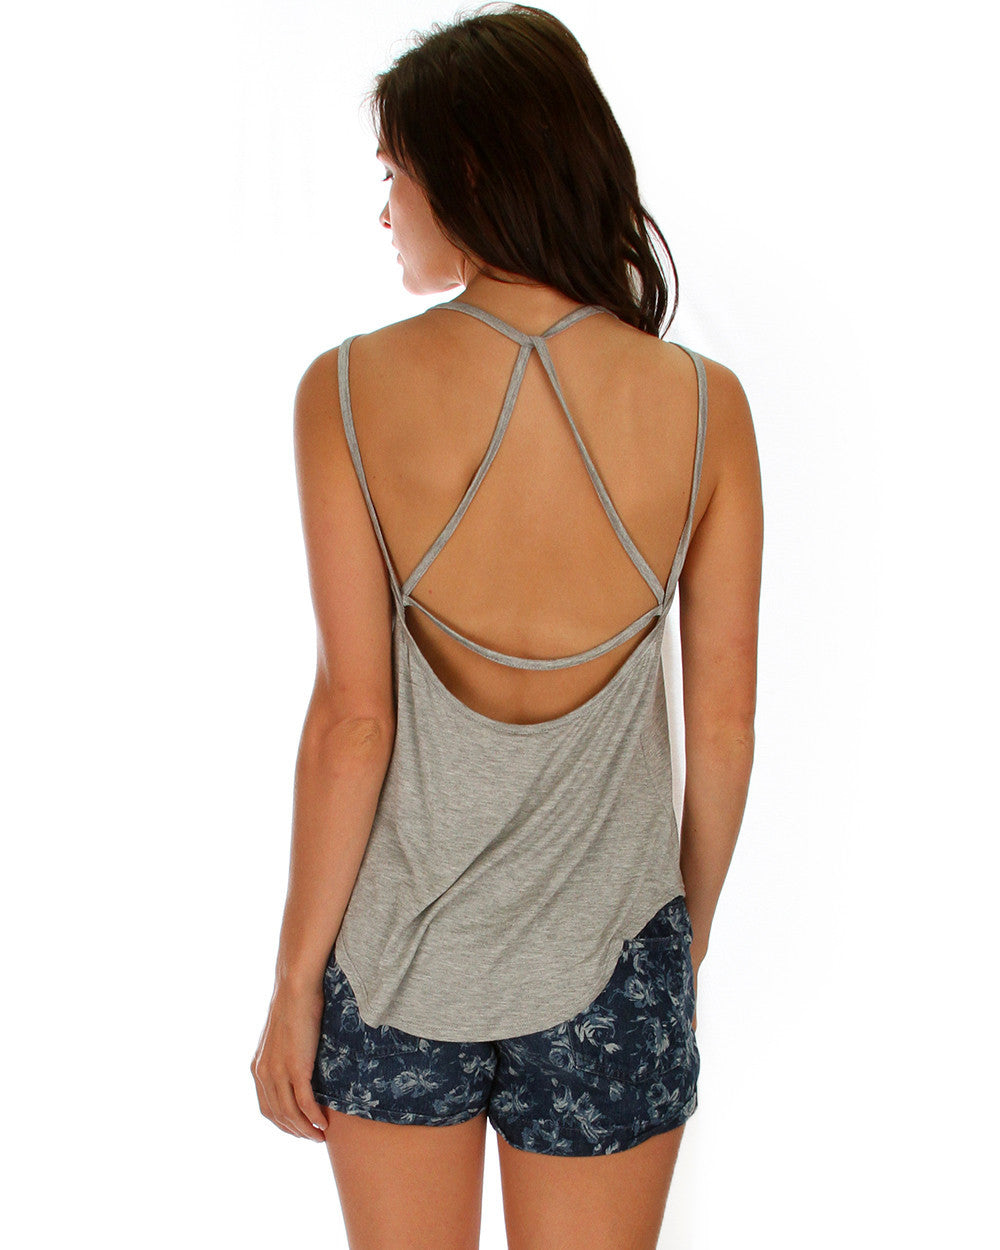 Oh My Straps! Tank Top In Grey